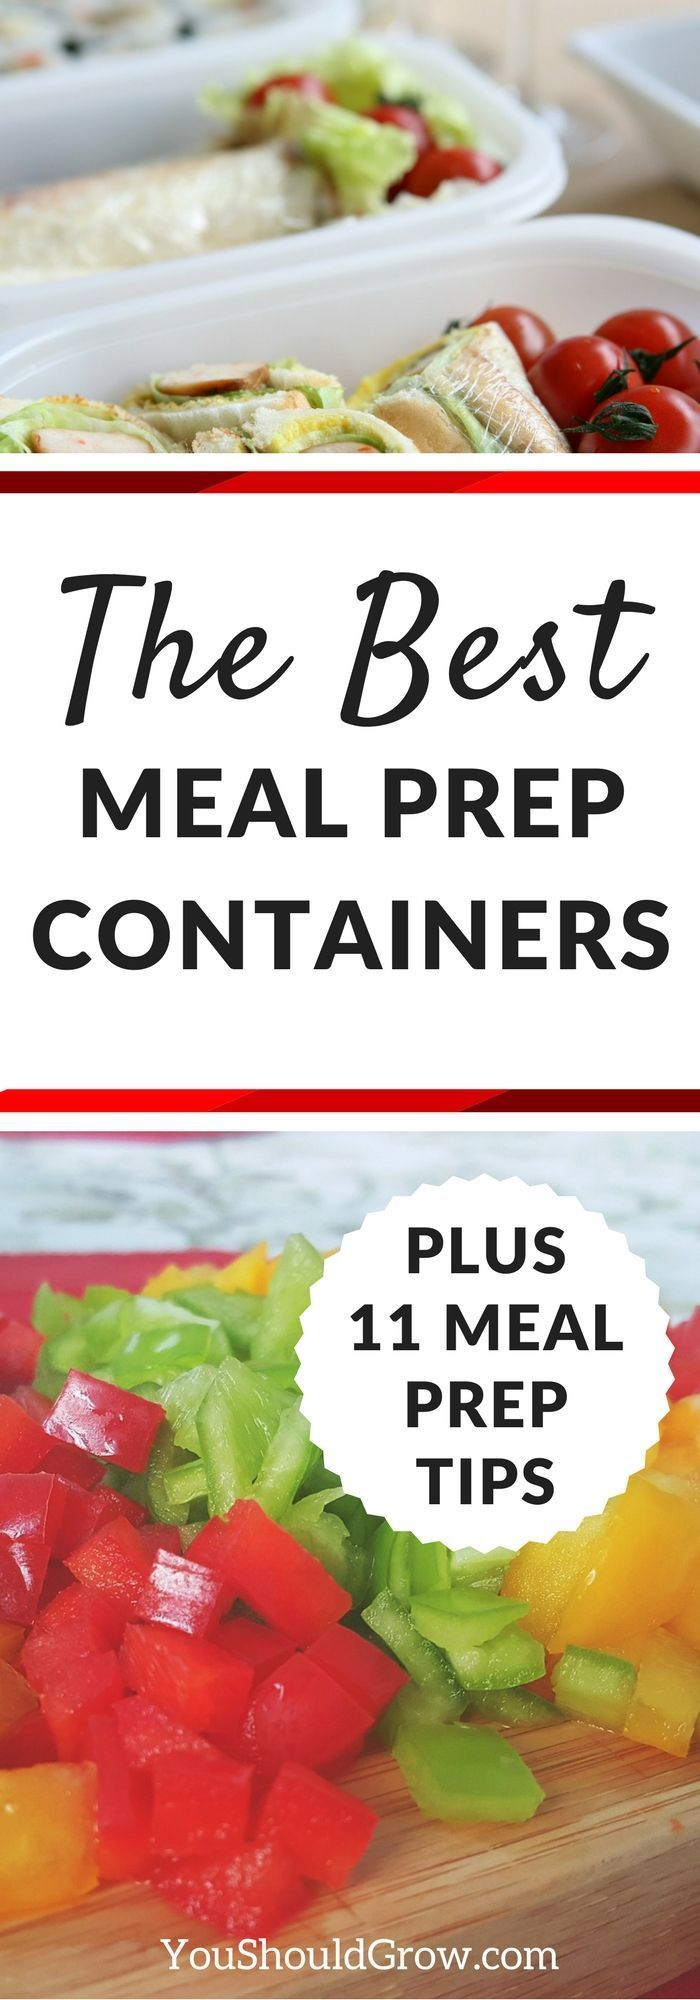 Meal planning and prepping is a lot of work! But it's so worth it! Click through for meal prep tips and recommendations for food storage.